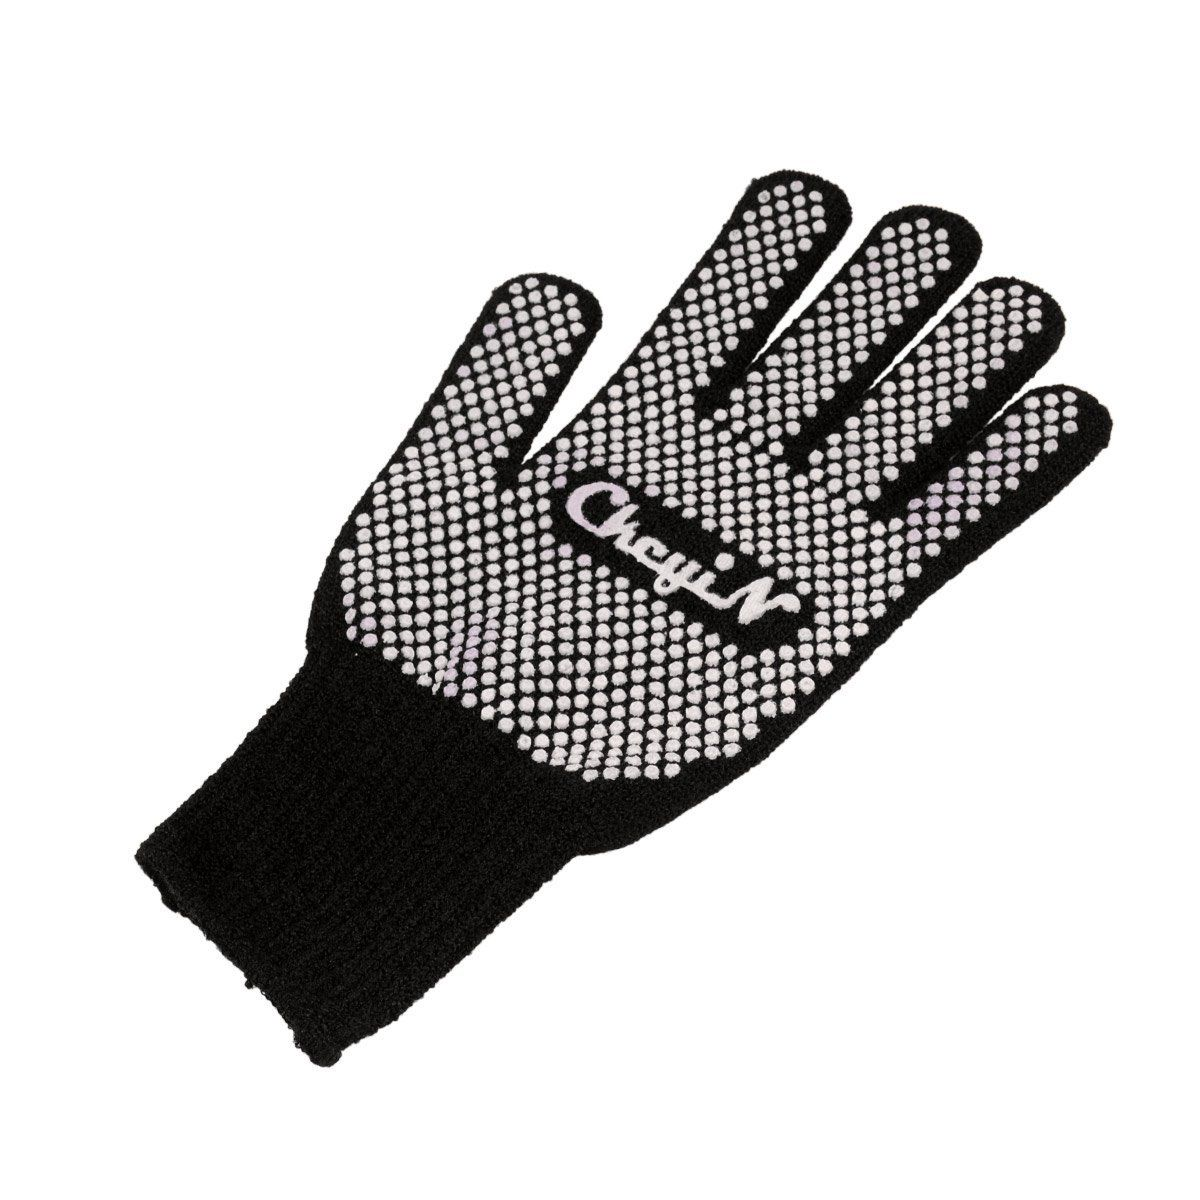 Heat Resistant Gloves Ckeyin Professional Heat Proof Protection Glove For Curling Flat Iron And Curling Wand Straig Heat Resistant Gloves Hair Tools Hair Care